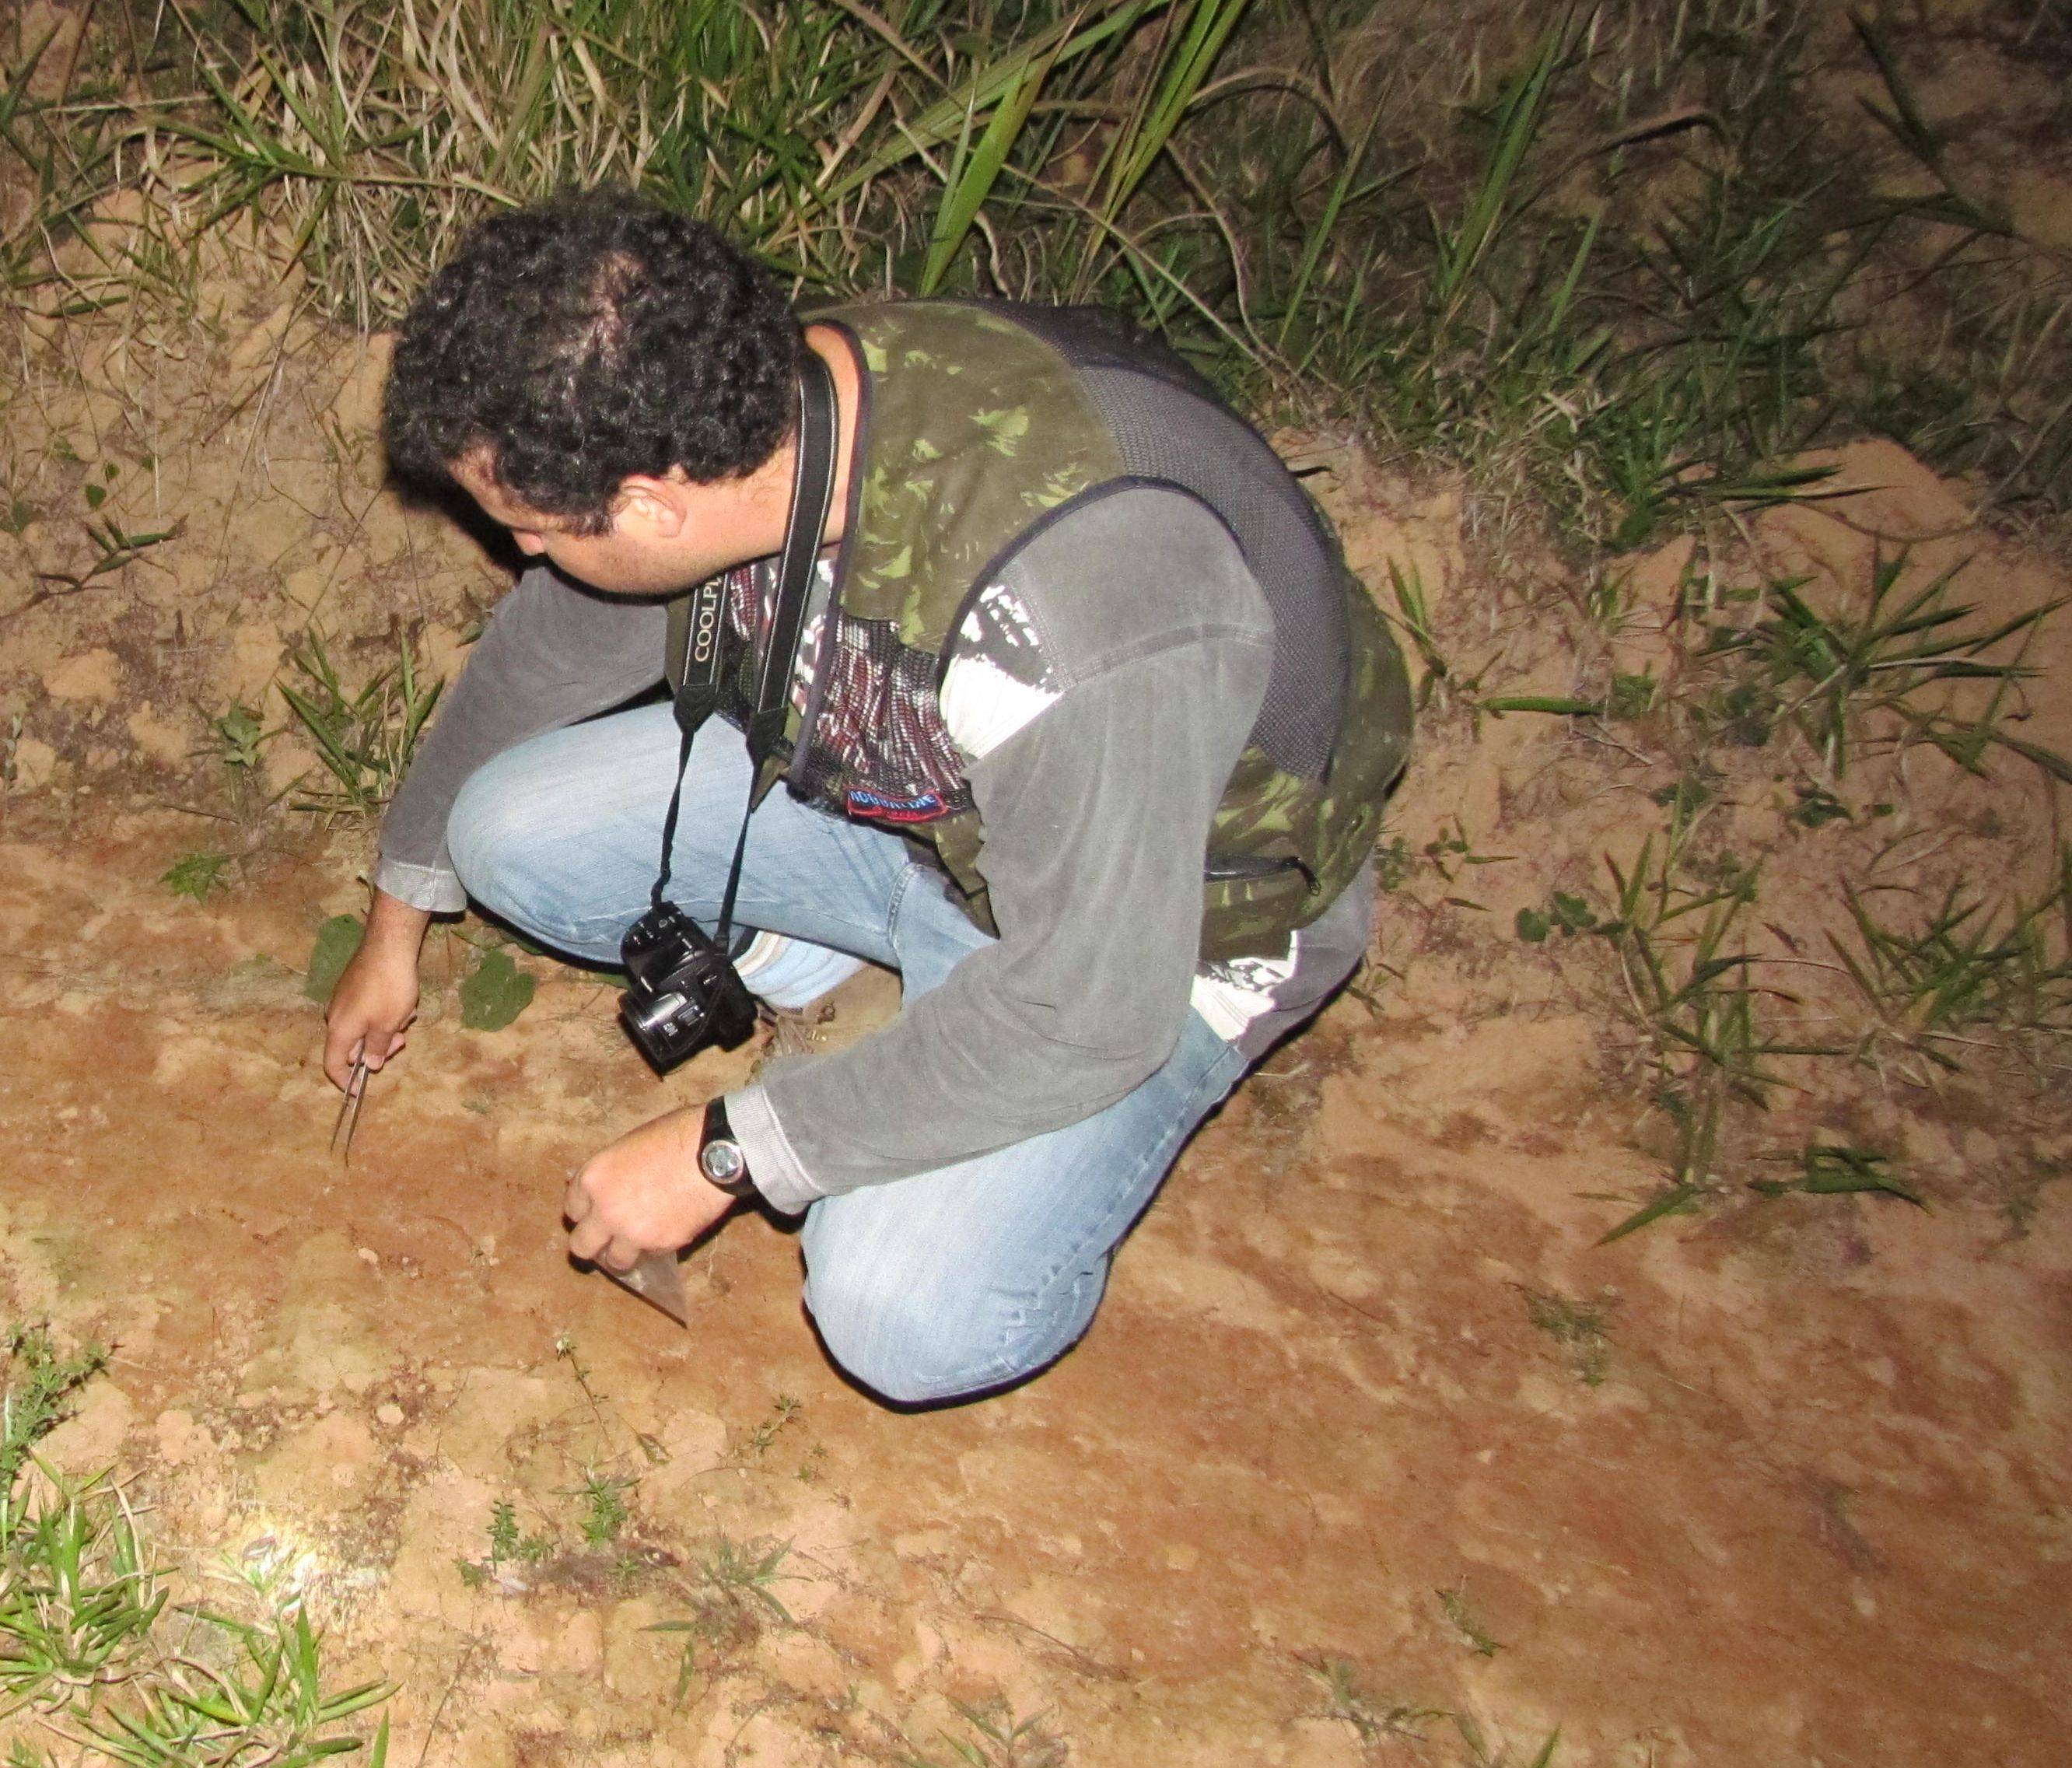 Marcelo Magioli collecting samples.